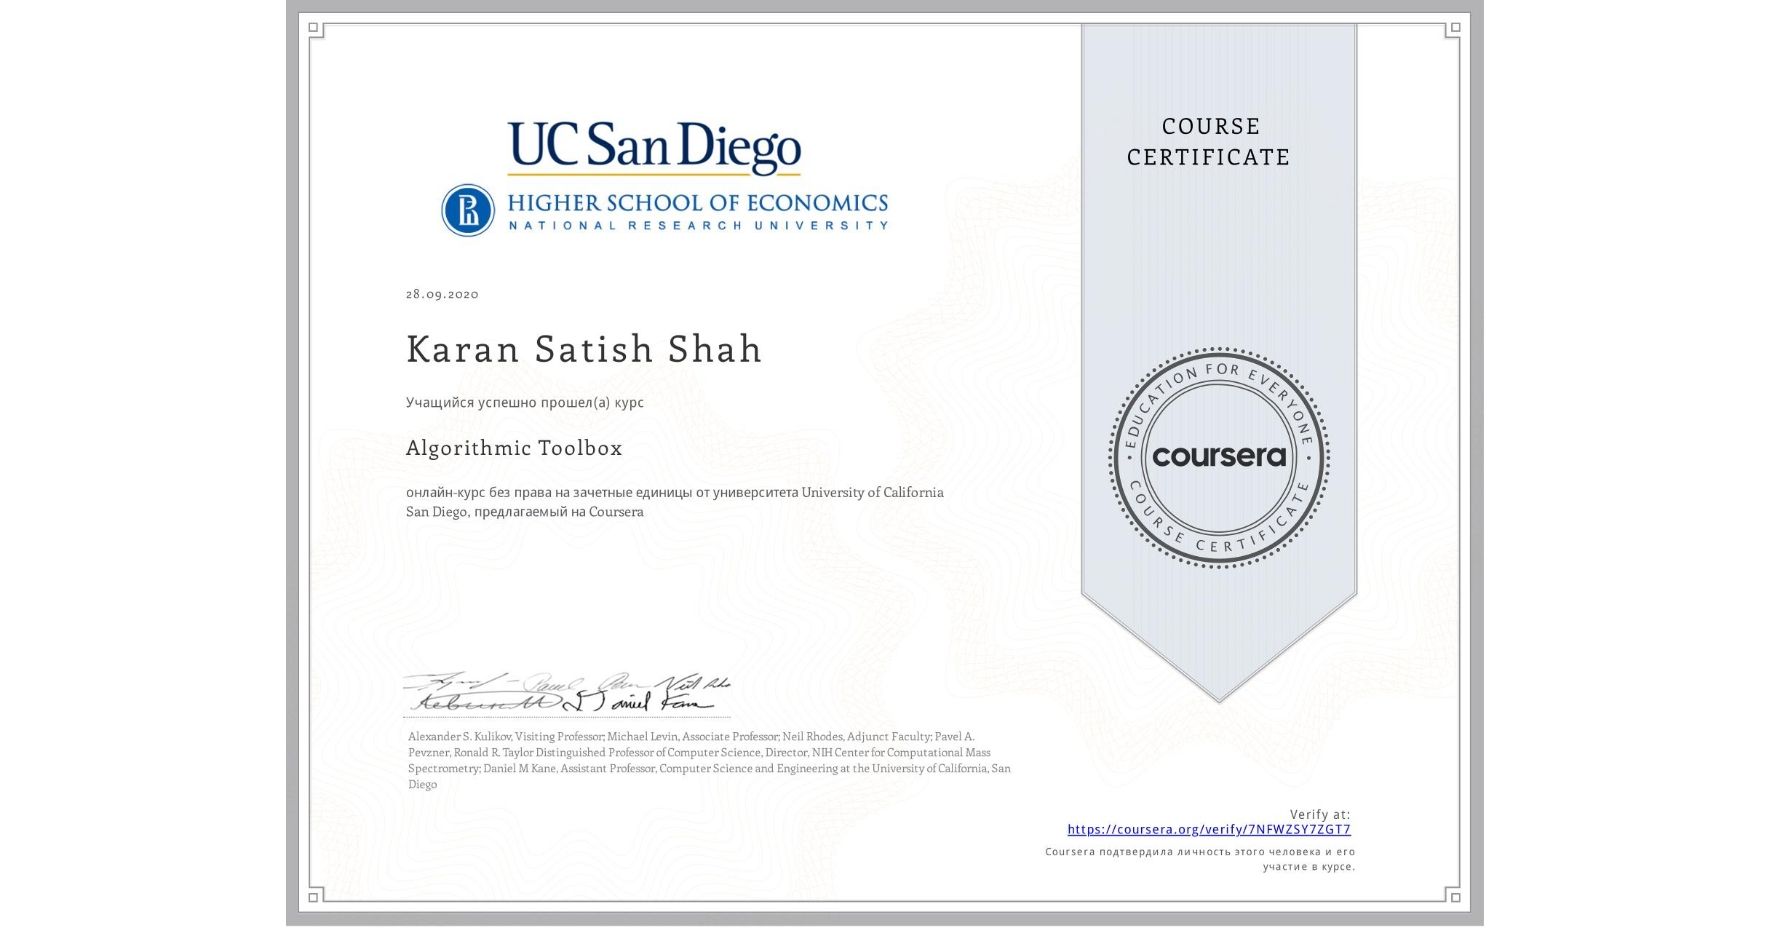 View certificate for Karan Satish Shah, Algorithmic Toolbox, an online non-credit course authorized by University of California San Diego & HSE University and offered through Coursera